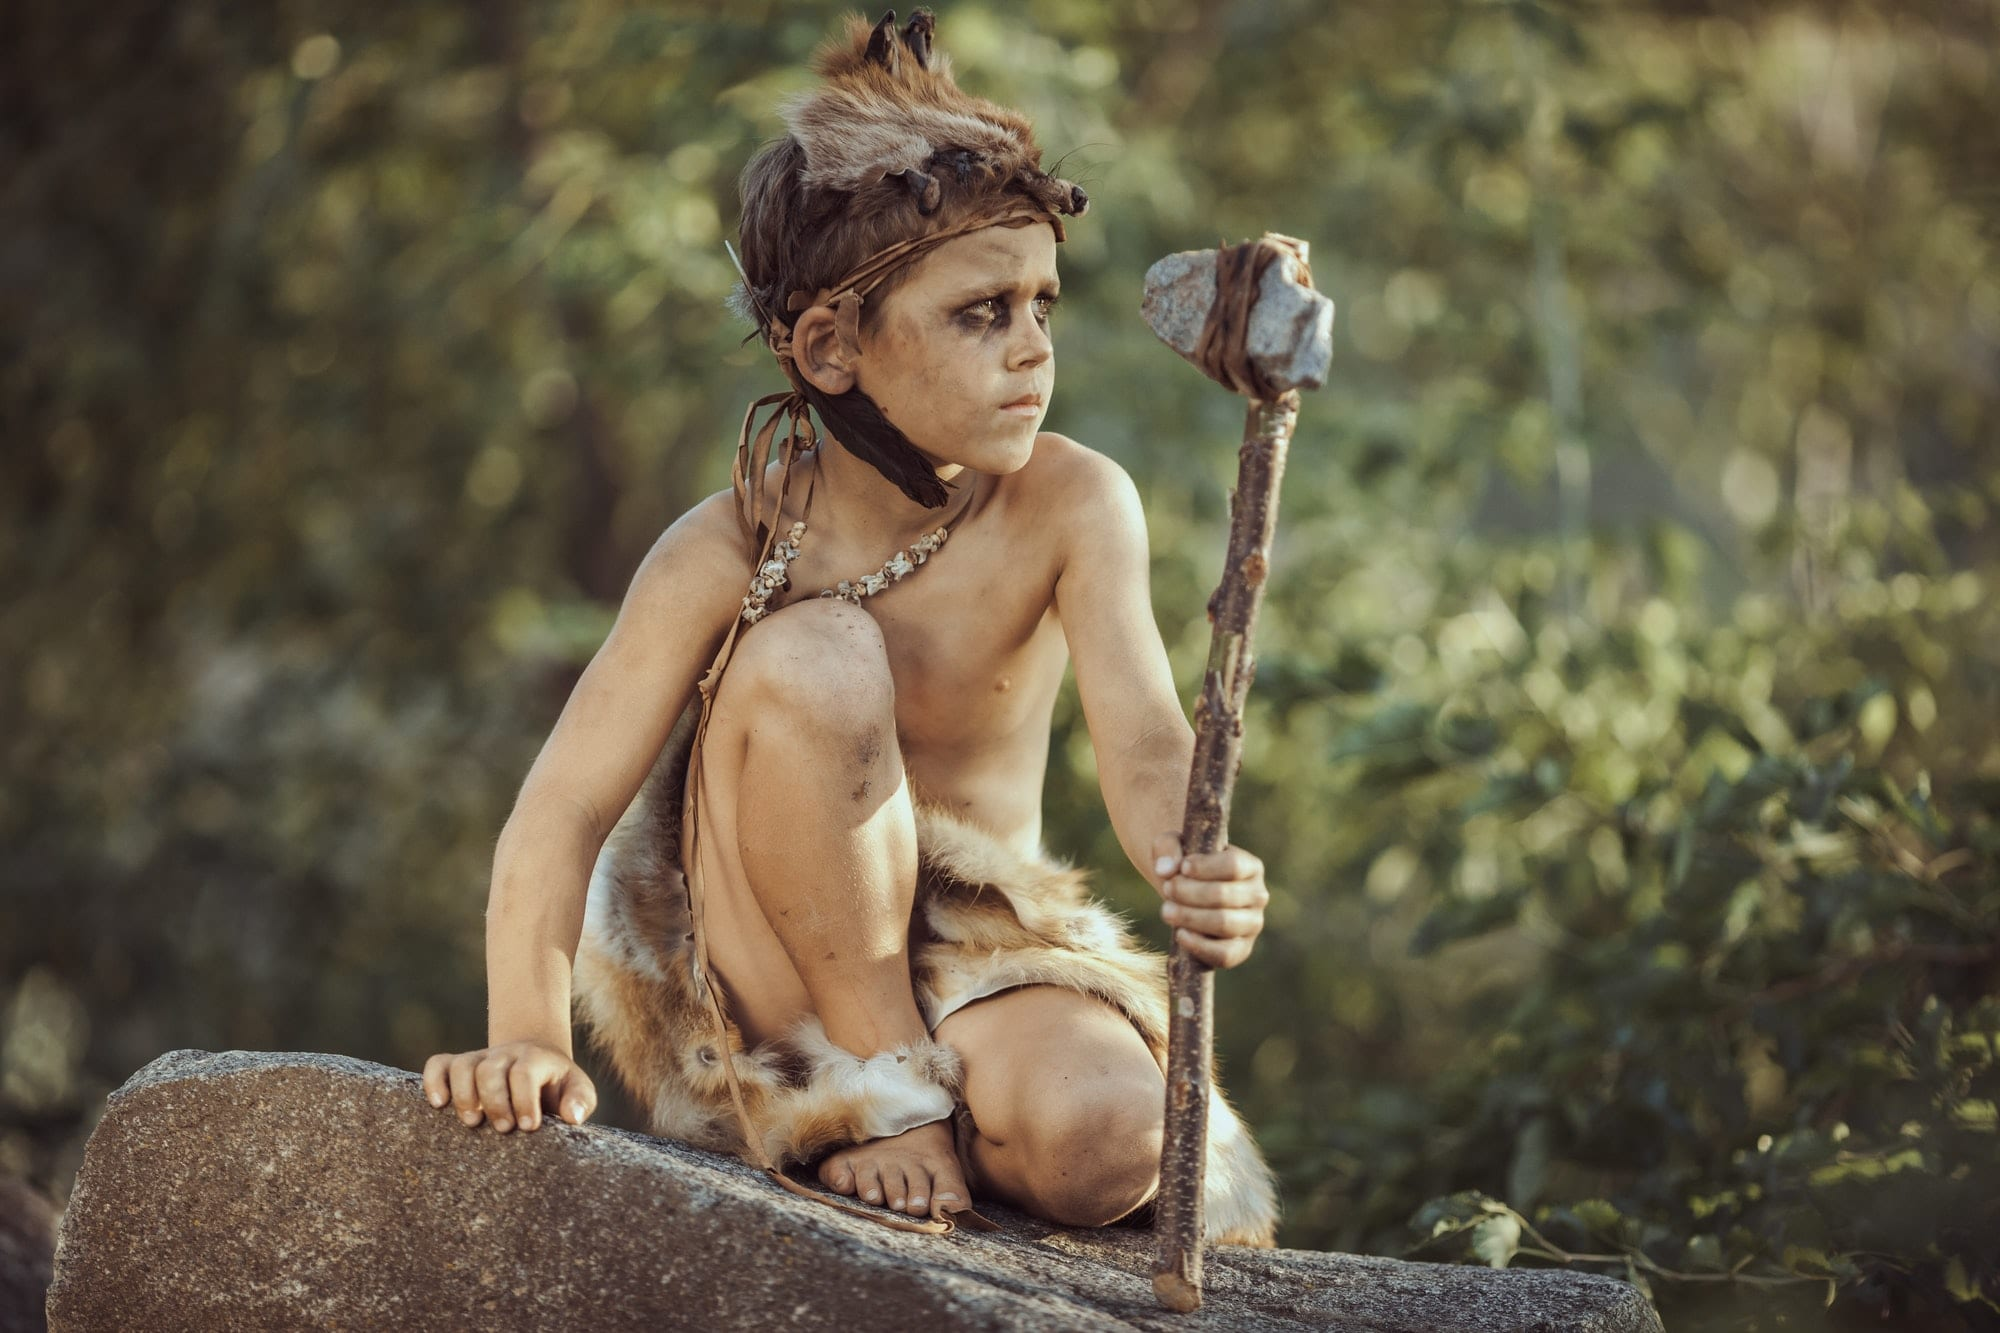 Caveman, Manly Boy With Primitive Weapon Hunting Outdoors